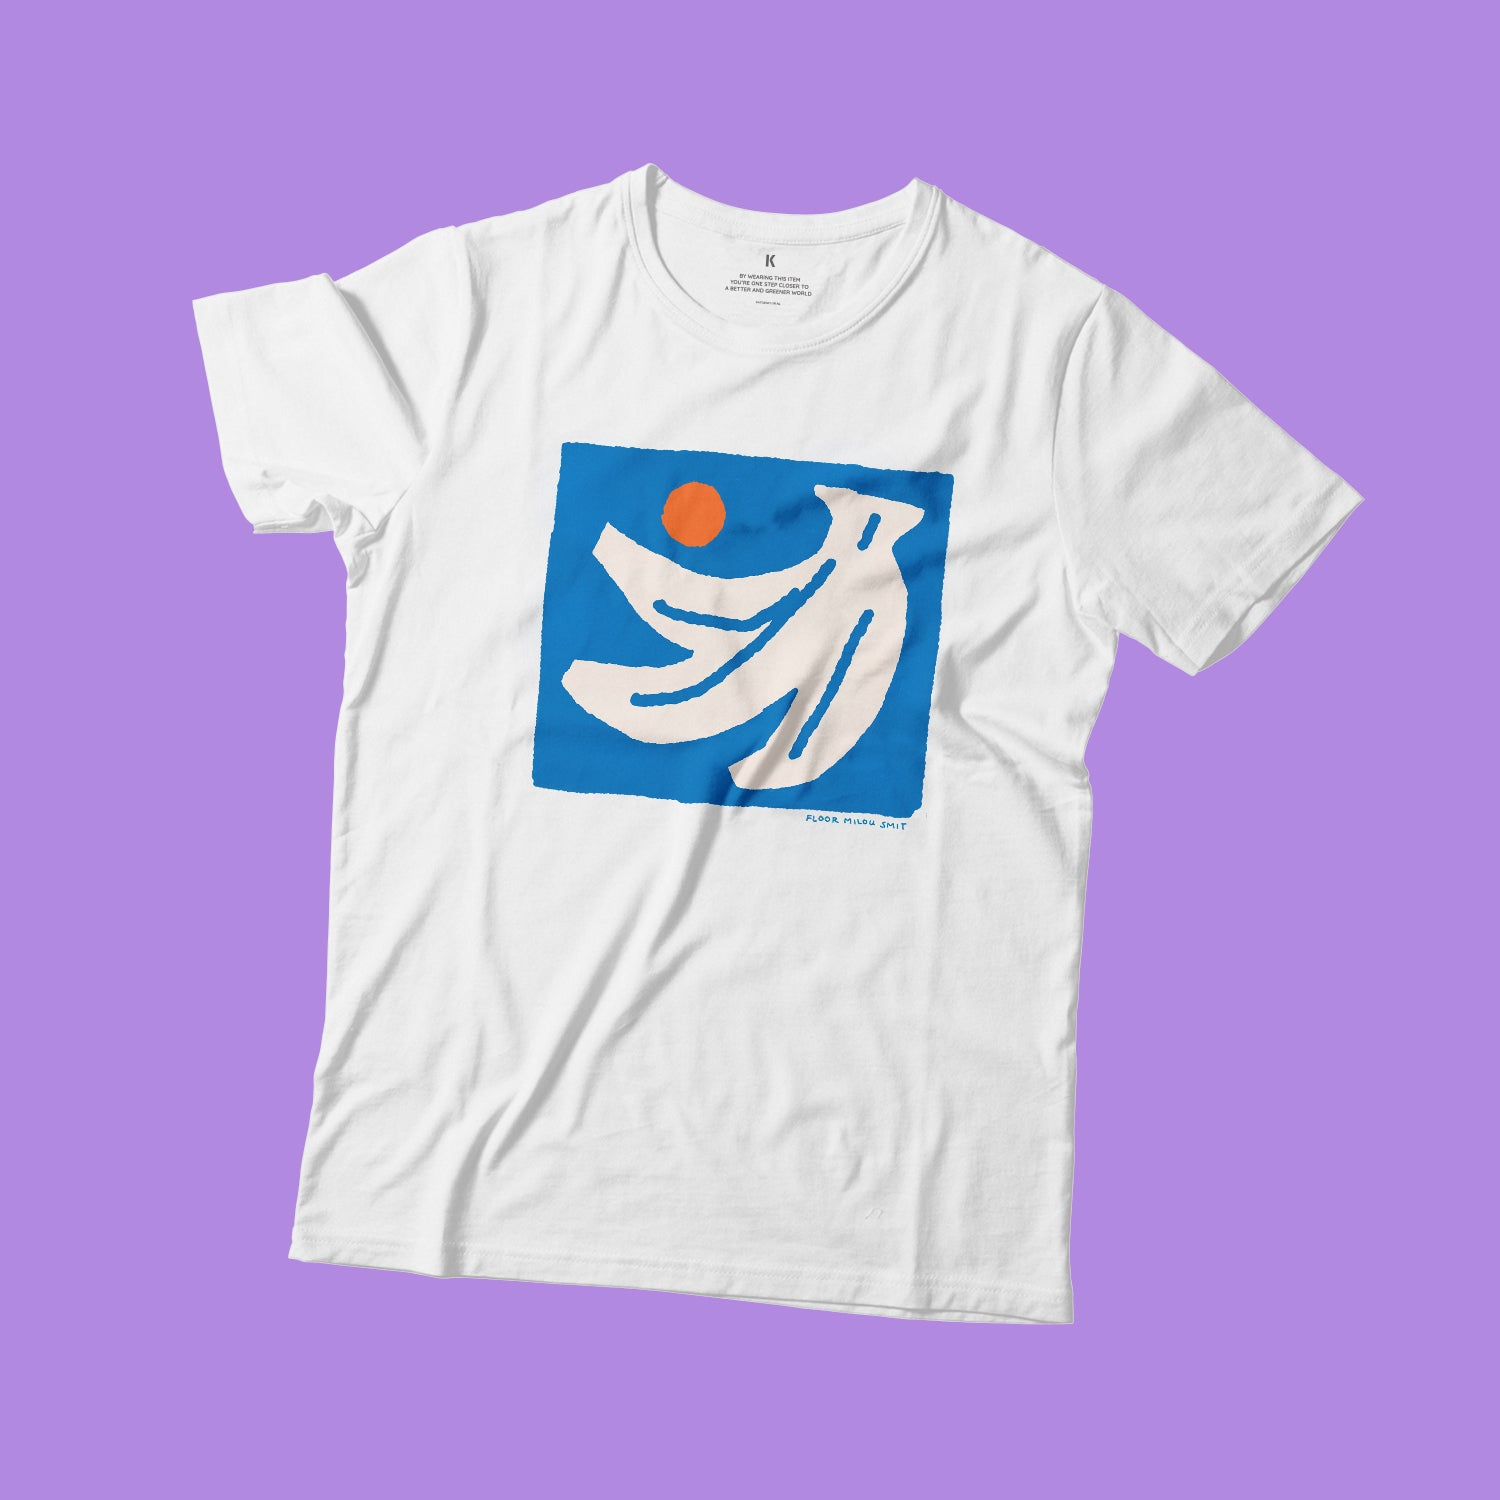 A white t-shirt flat on lilac background. The print on the shirt is an off-white hand of bananas with an orange circle next to them on a blue square background.